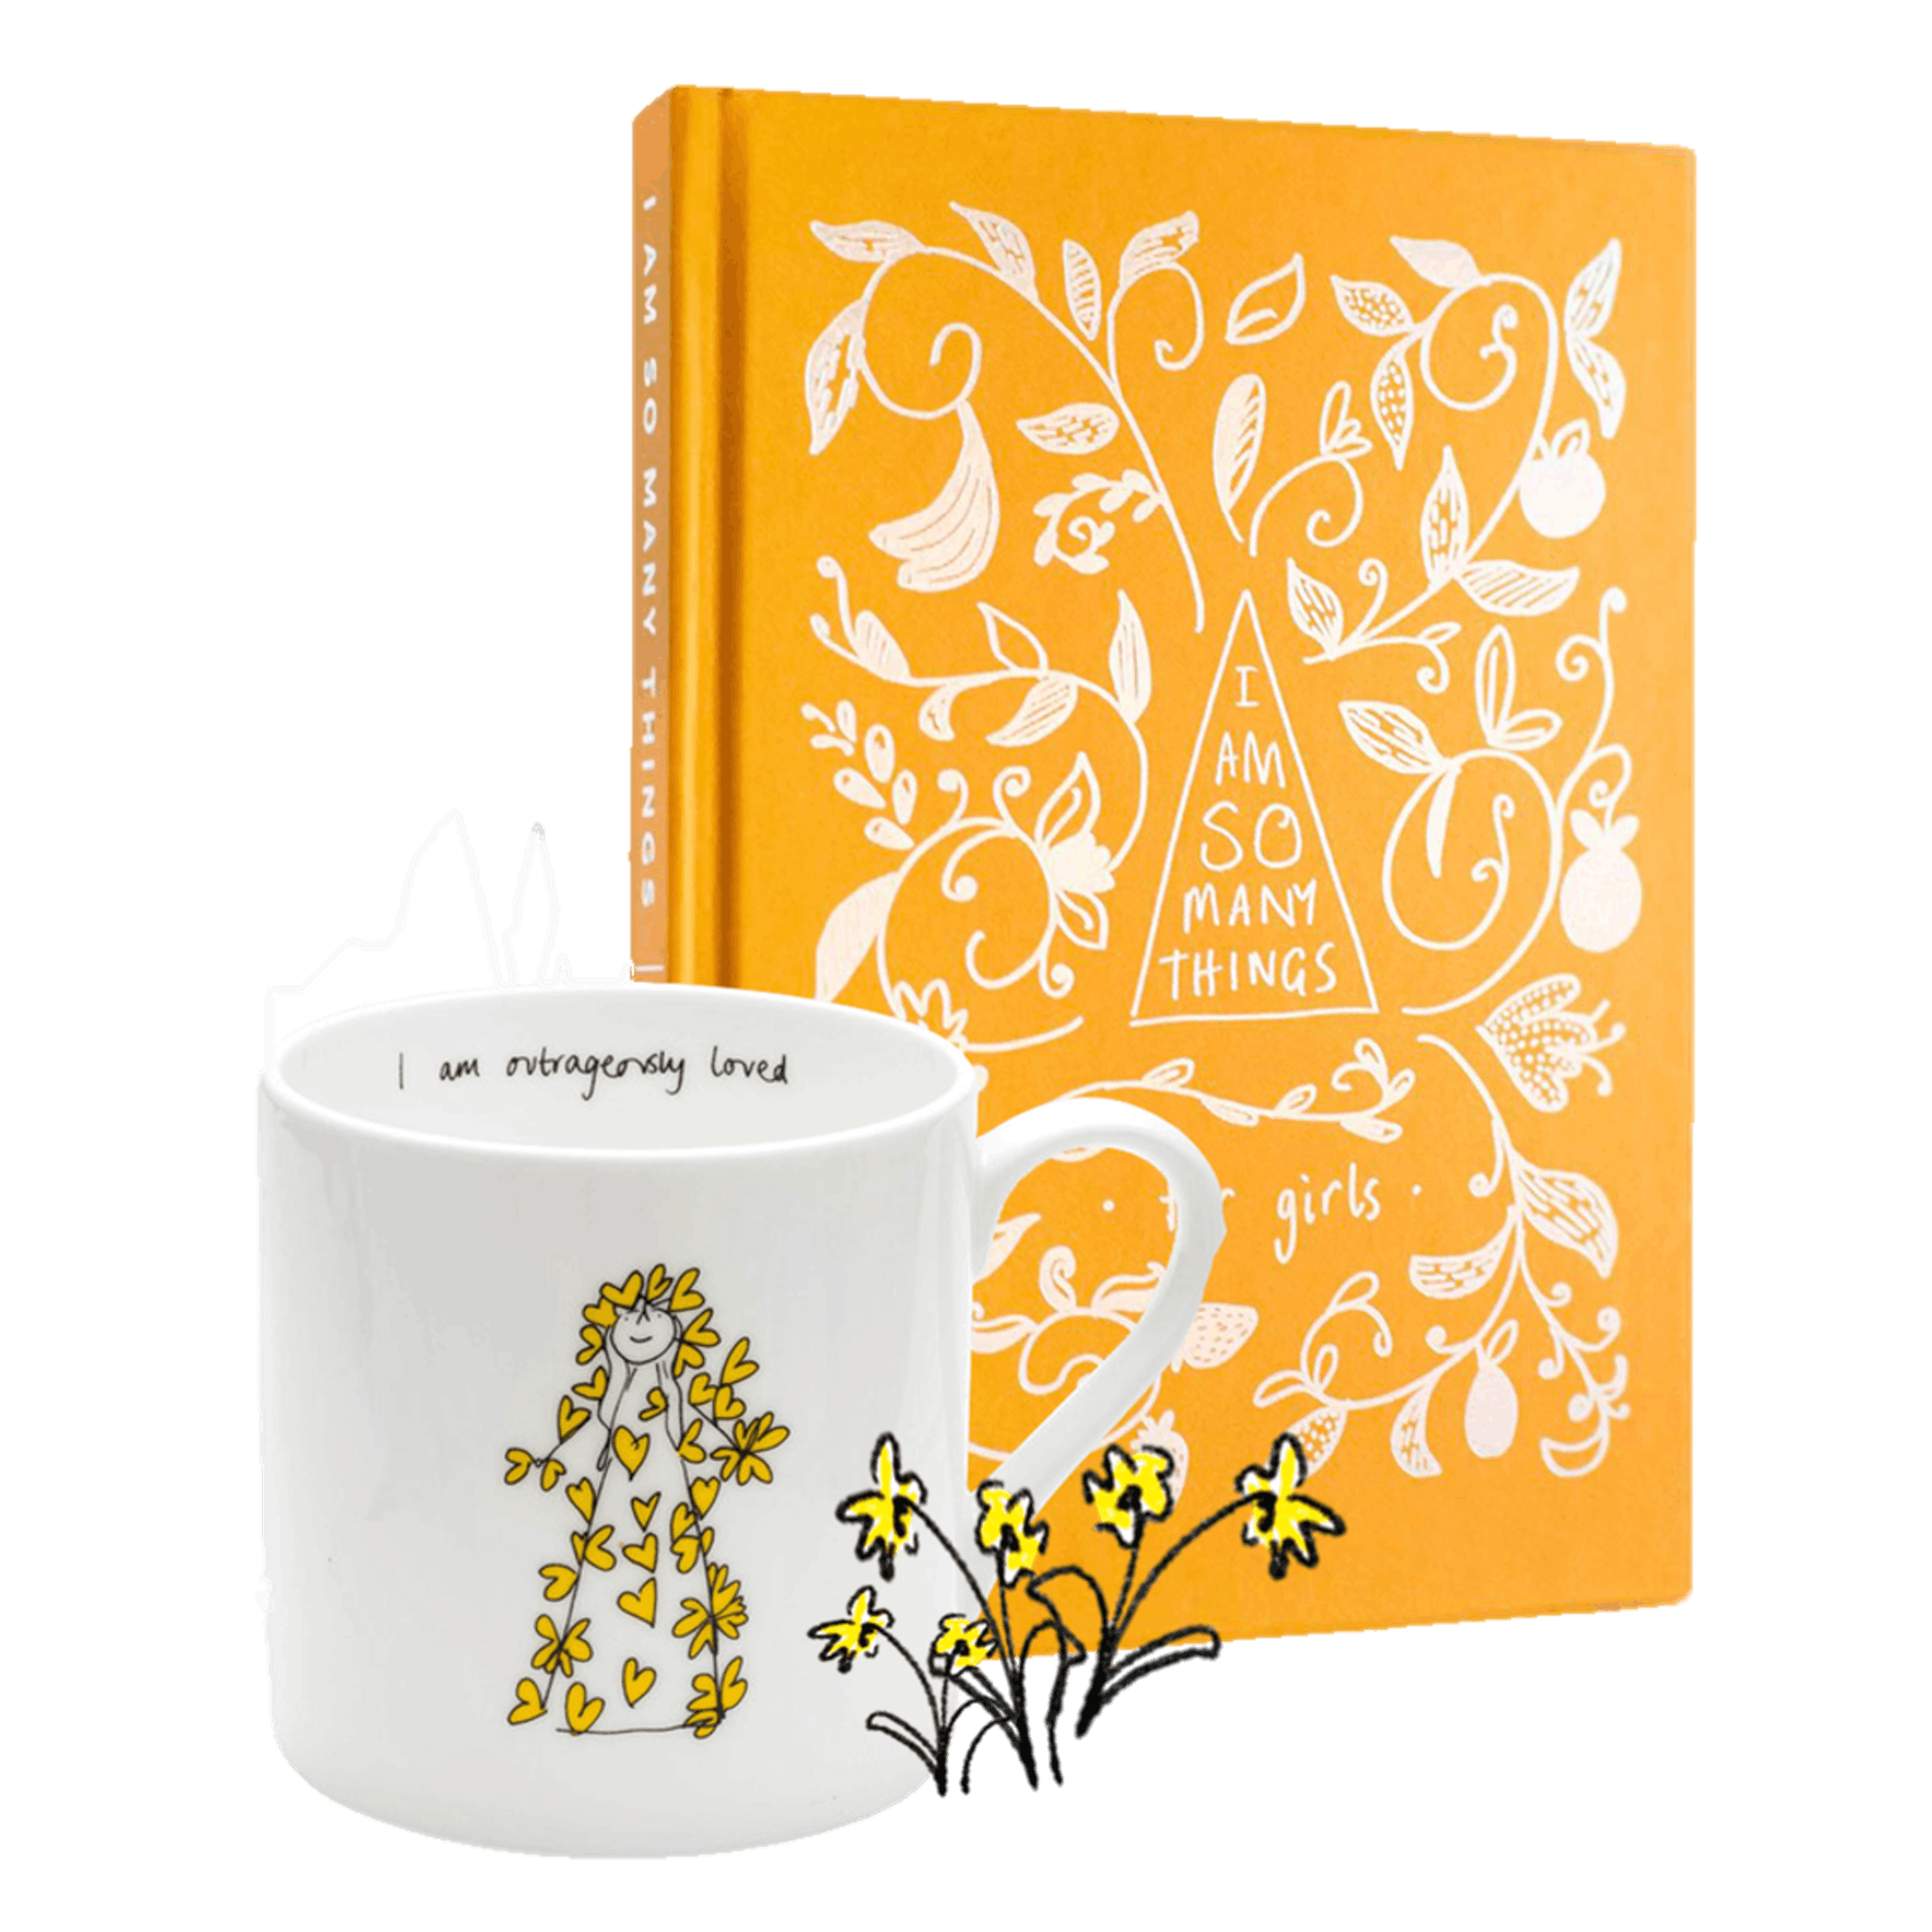 'I Am So Many Things' Girl's Book and Outrageously Loved Mug - Thea Muir